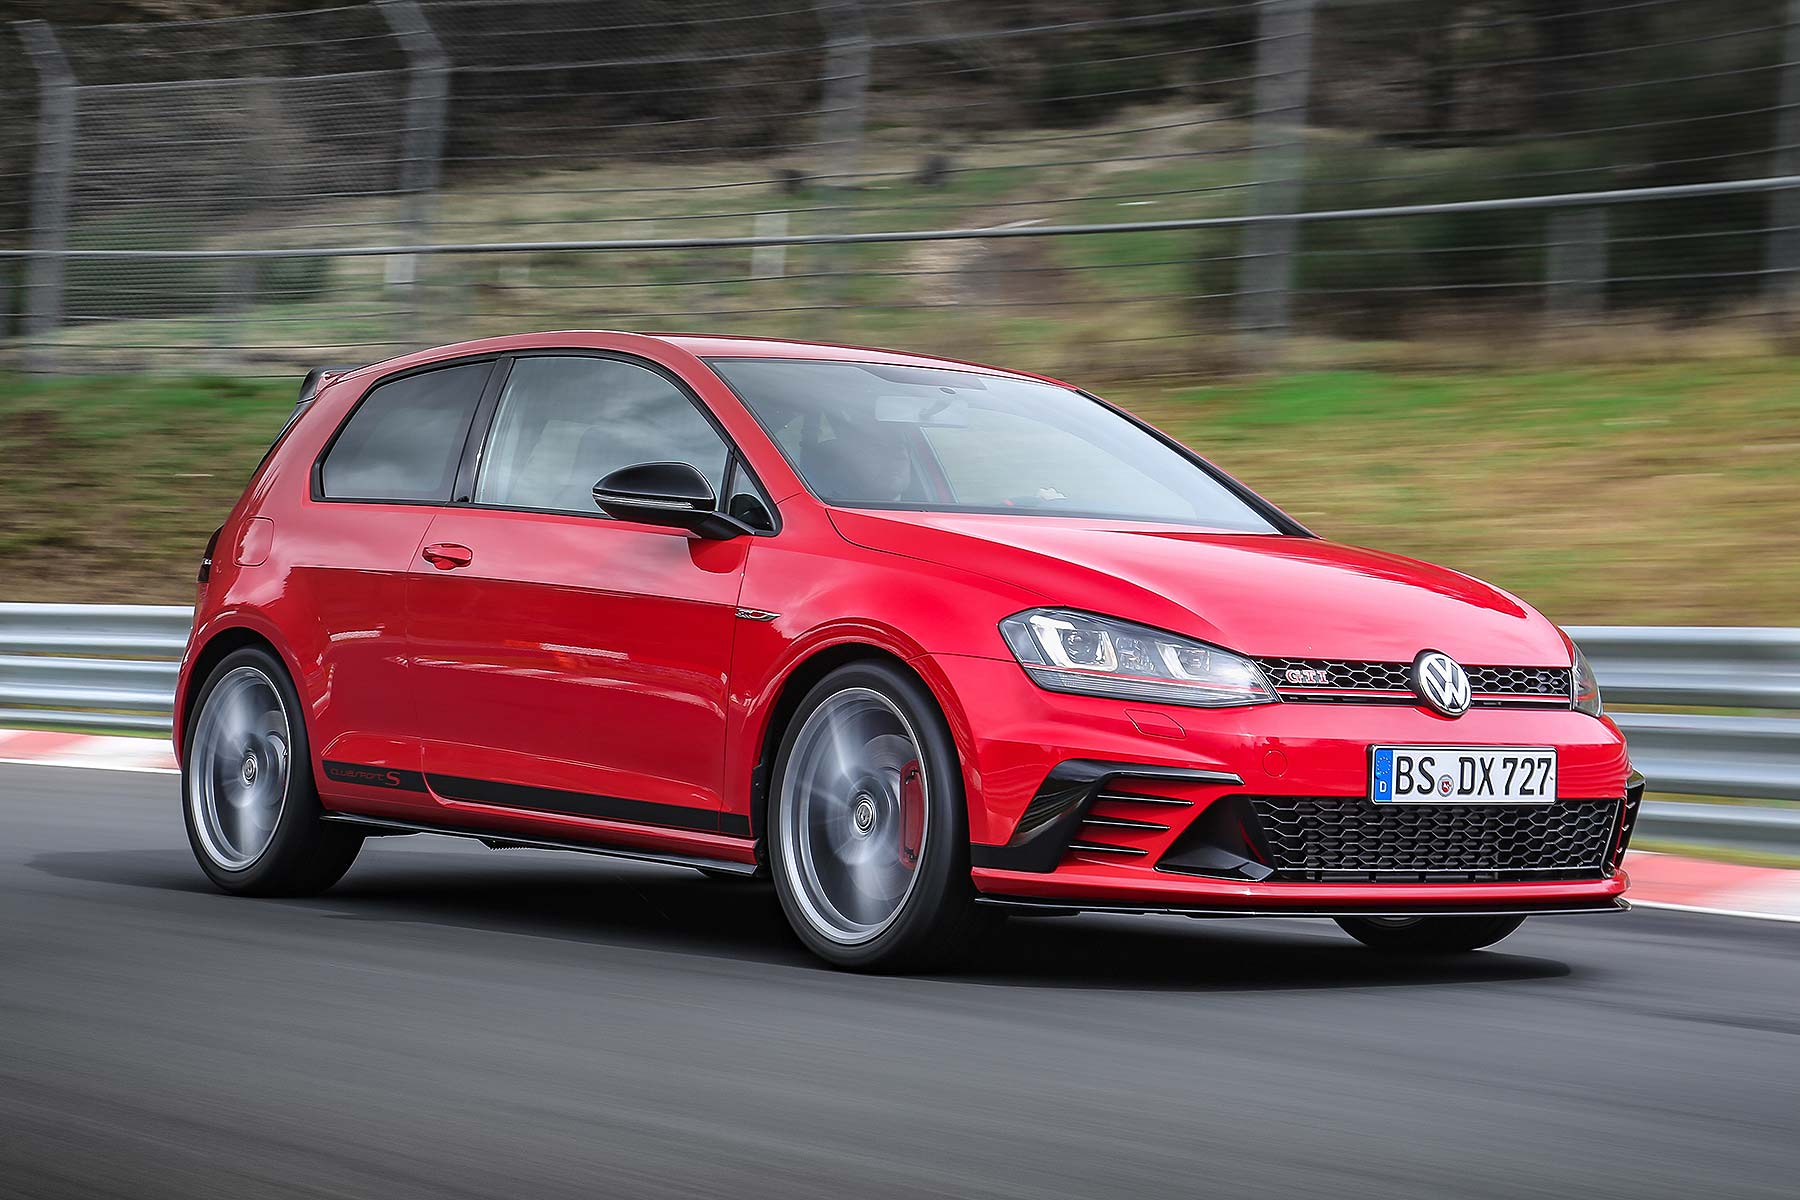 310hp volkswagen golf gti clubsport s is new king of the n rburgring motoring research. Black Bedroom Furniture Sets. Home Design Ideas